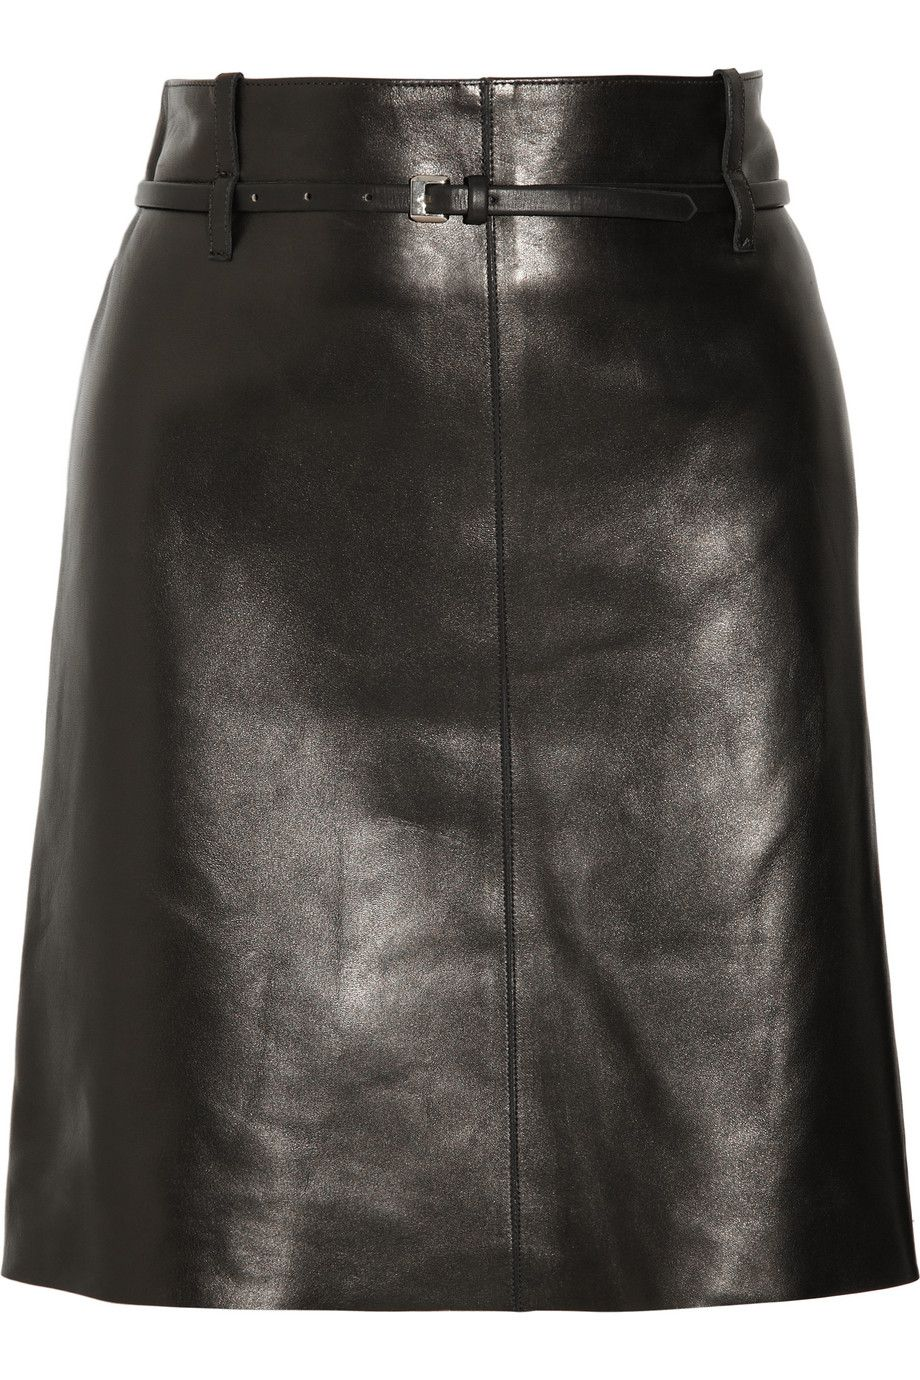 da9b726fa901 Chloé | Belted Leather Skirt | Authentic Self | Long leather skirt ...